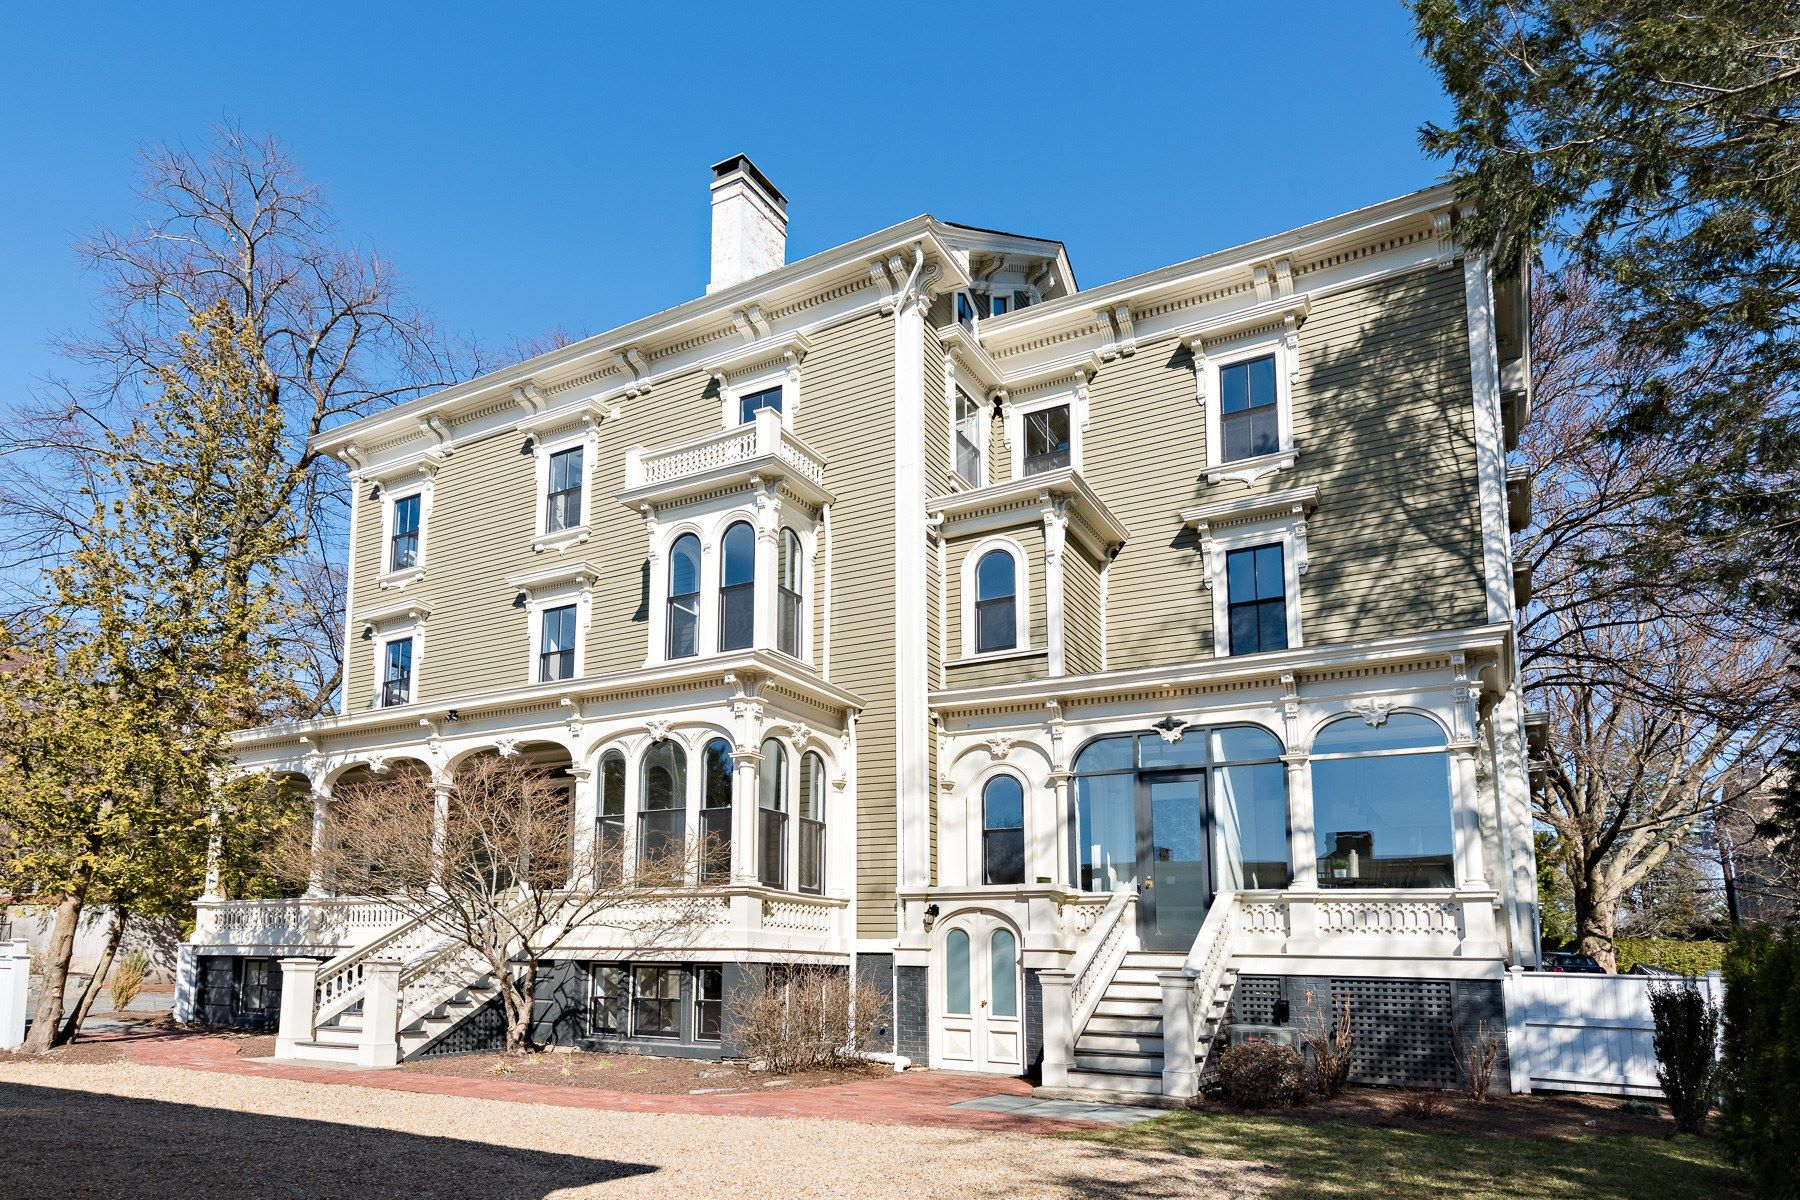 Condominiums for Sale at 13 Cushing Street, #2, East Side Of Providence, RI 13 Cushing Street 2 Providence, Rhode Island 02906 United States